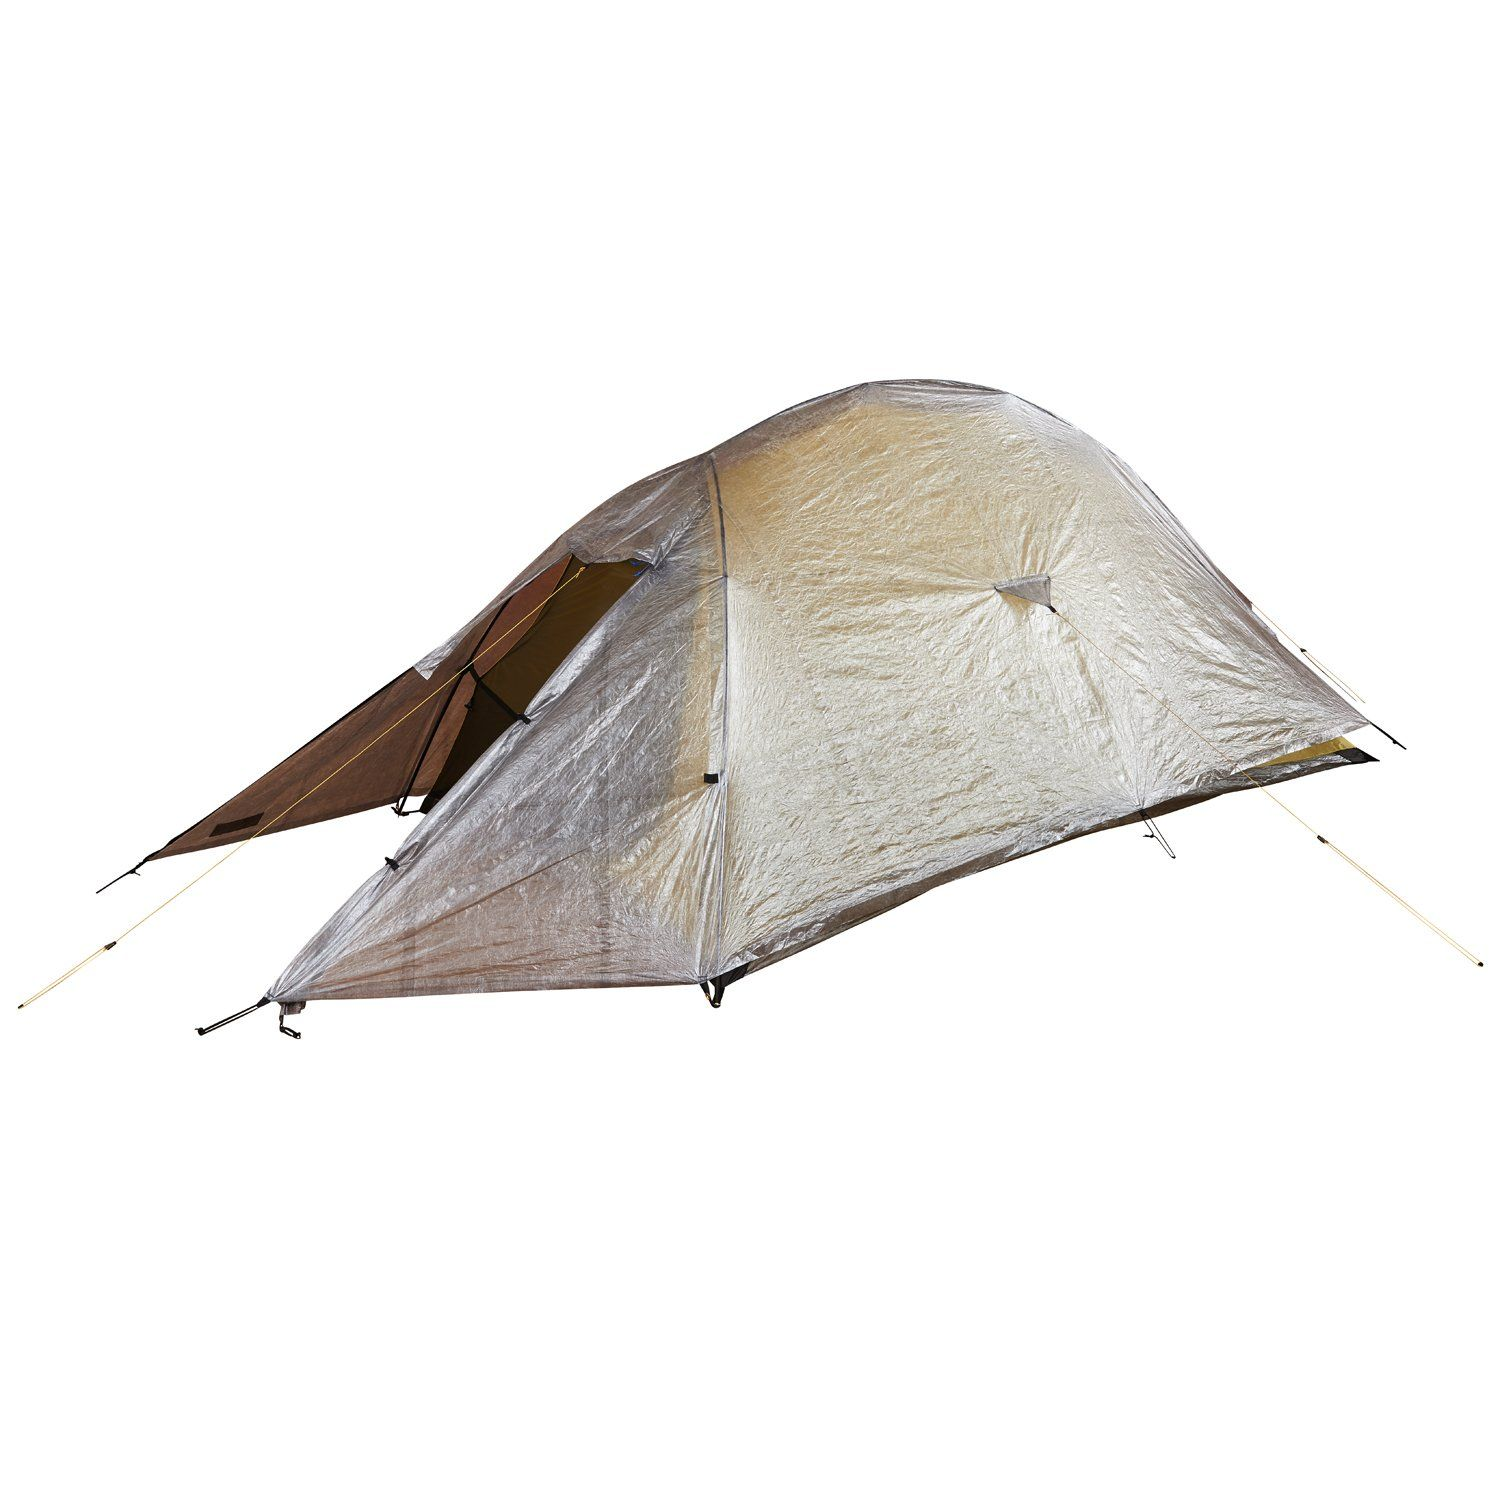 Solar Ultra 2 Tent - The lightest freestanding tent that is available for 2 people.  sc 1 st  Pinterest & Solar Ultra 2 Tent - The lightest freestanding tent that is ...